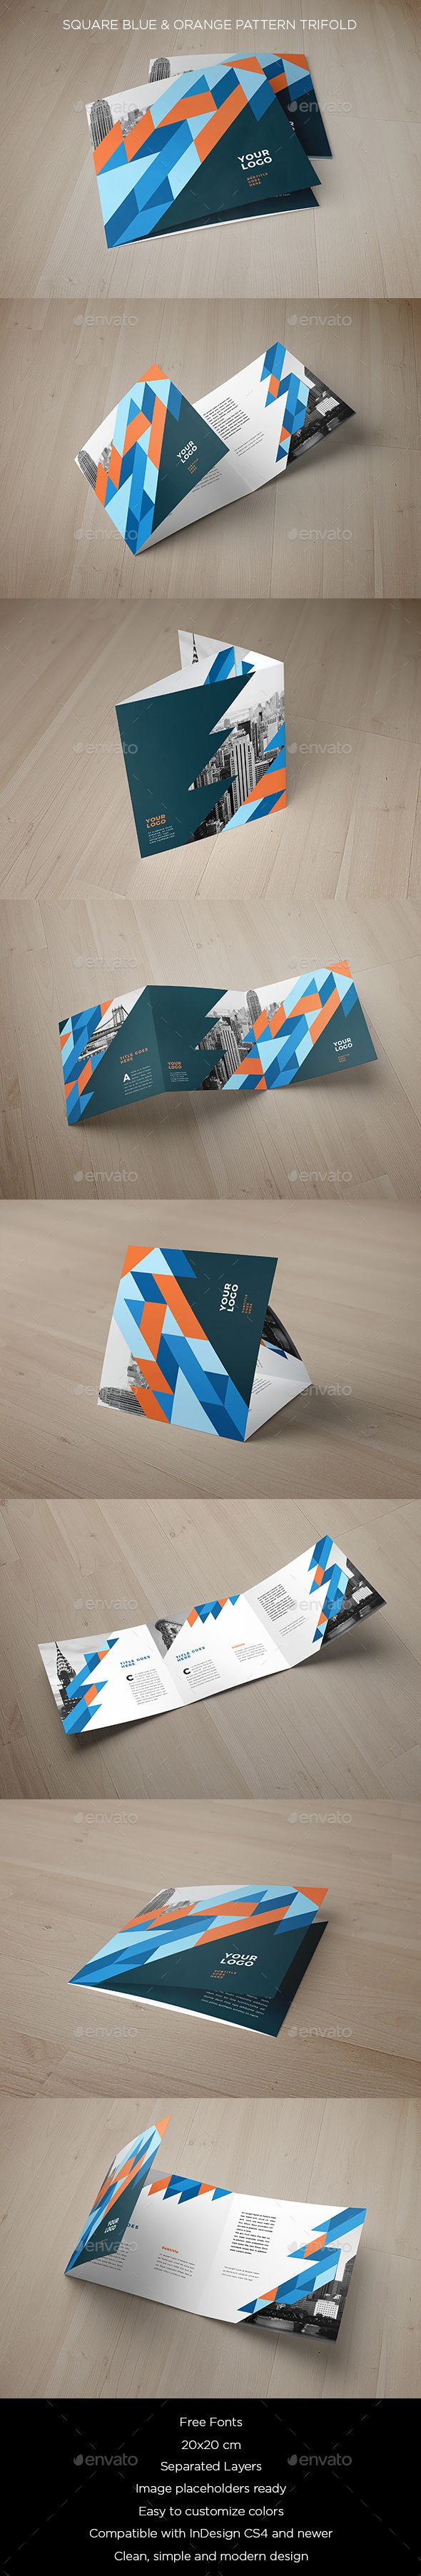 Square Blue & Orange Pattern Trifold Brochure Template InDesign INDD